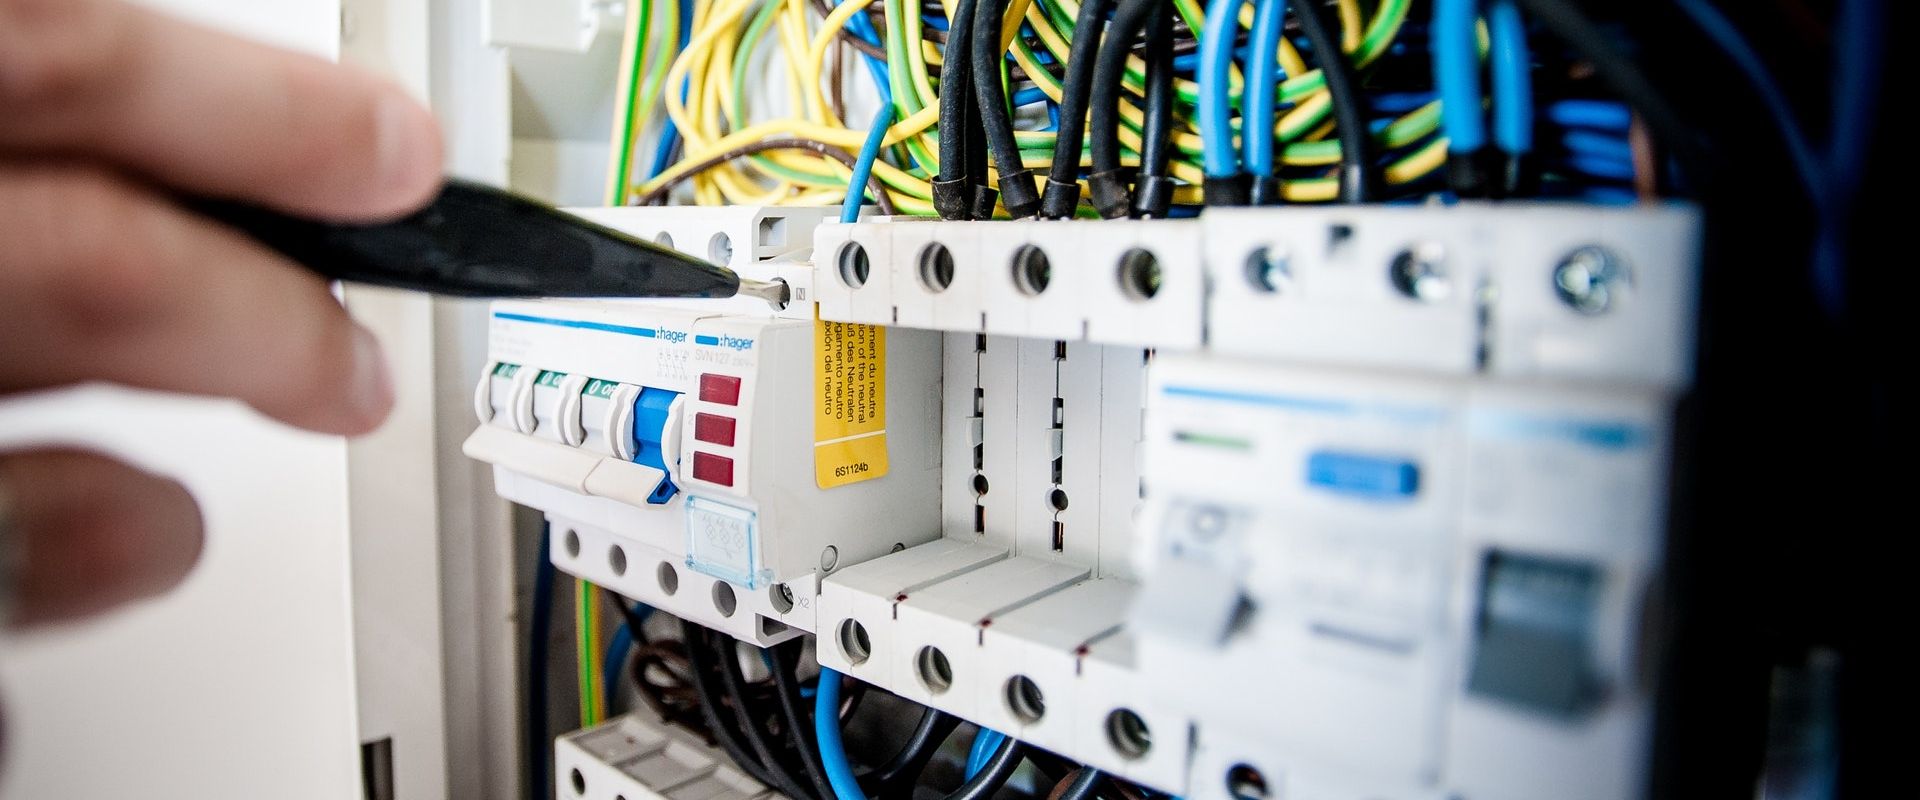 BT Electro Solutions - Electriciteitswerken en projecten